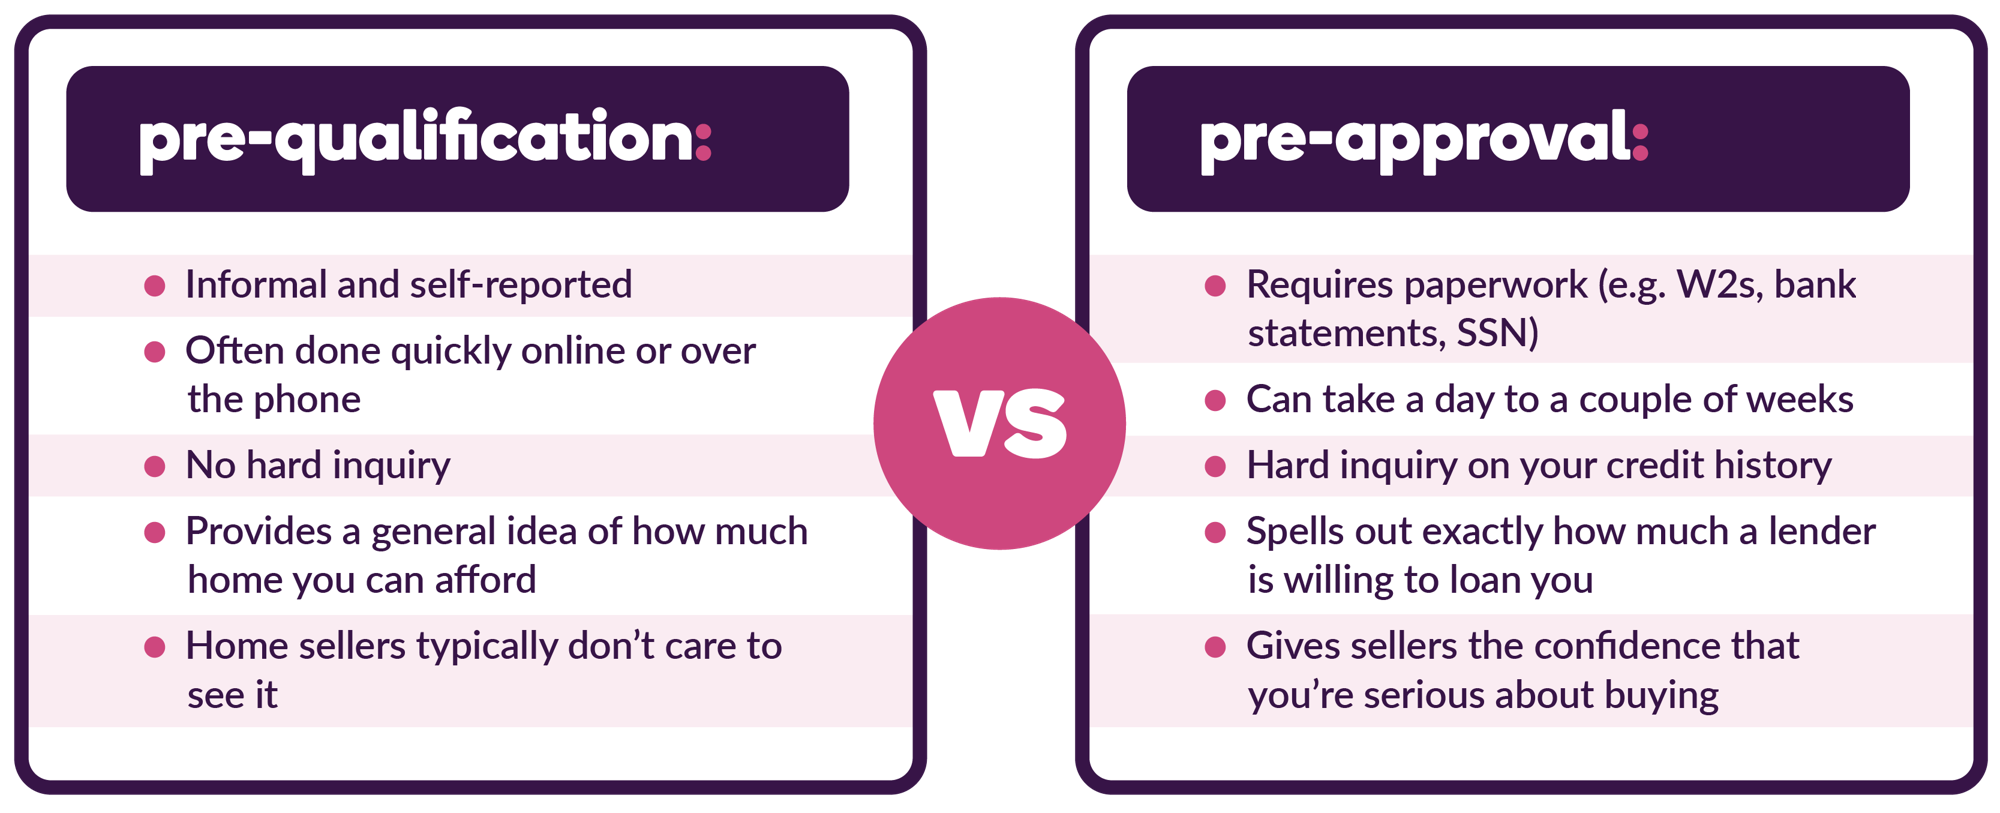 Pre-approval vs. pre-qualification comparison